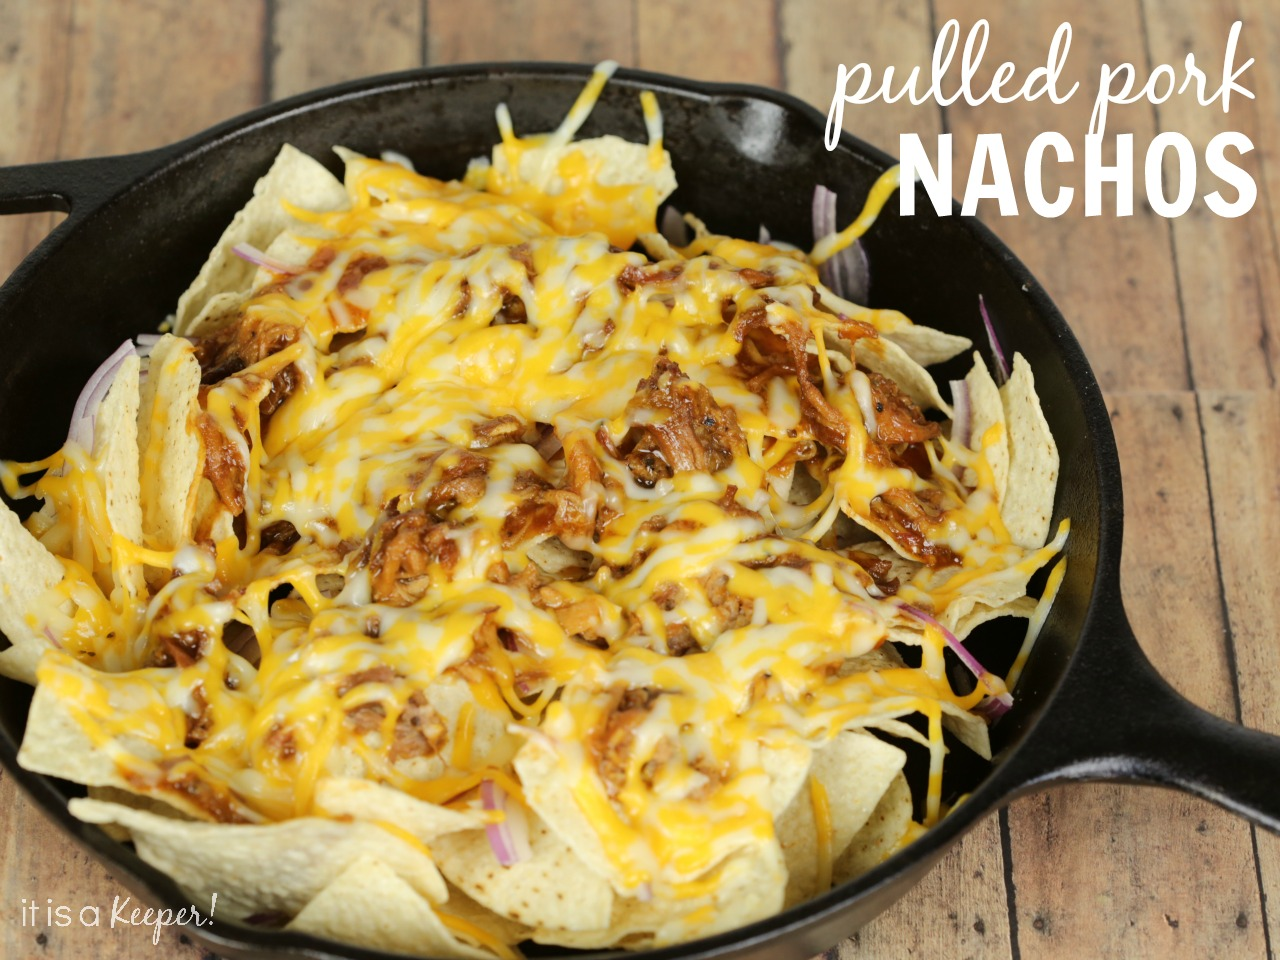 Slow Cooker Apple Bourbon Pulled Pork Nachos Recipe – an easy and delicious crock pot appetizer that is perfect for game day.